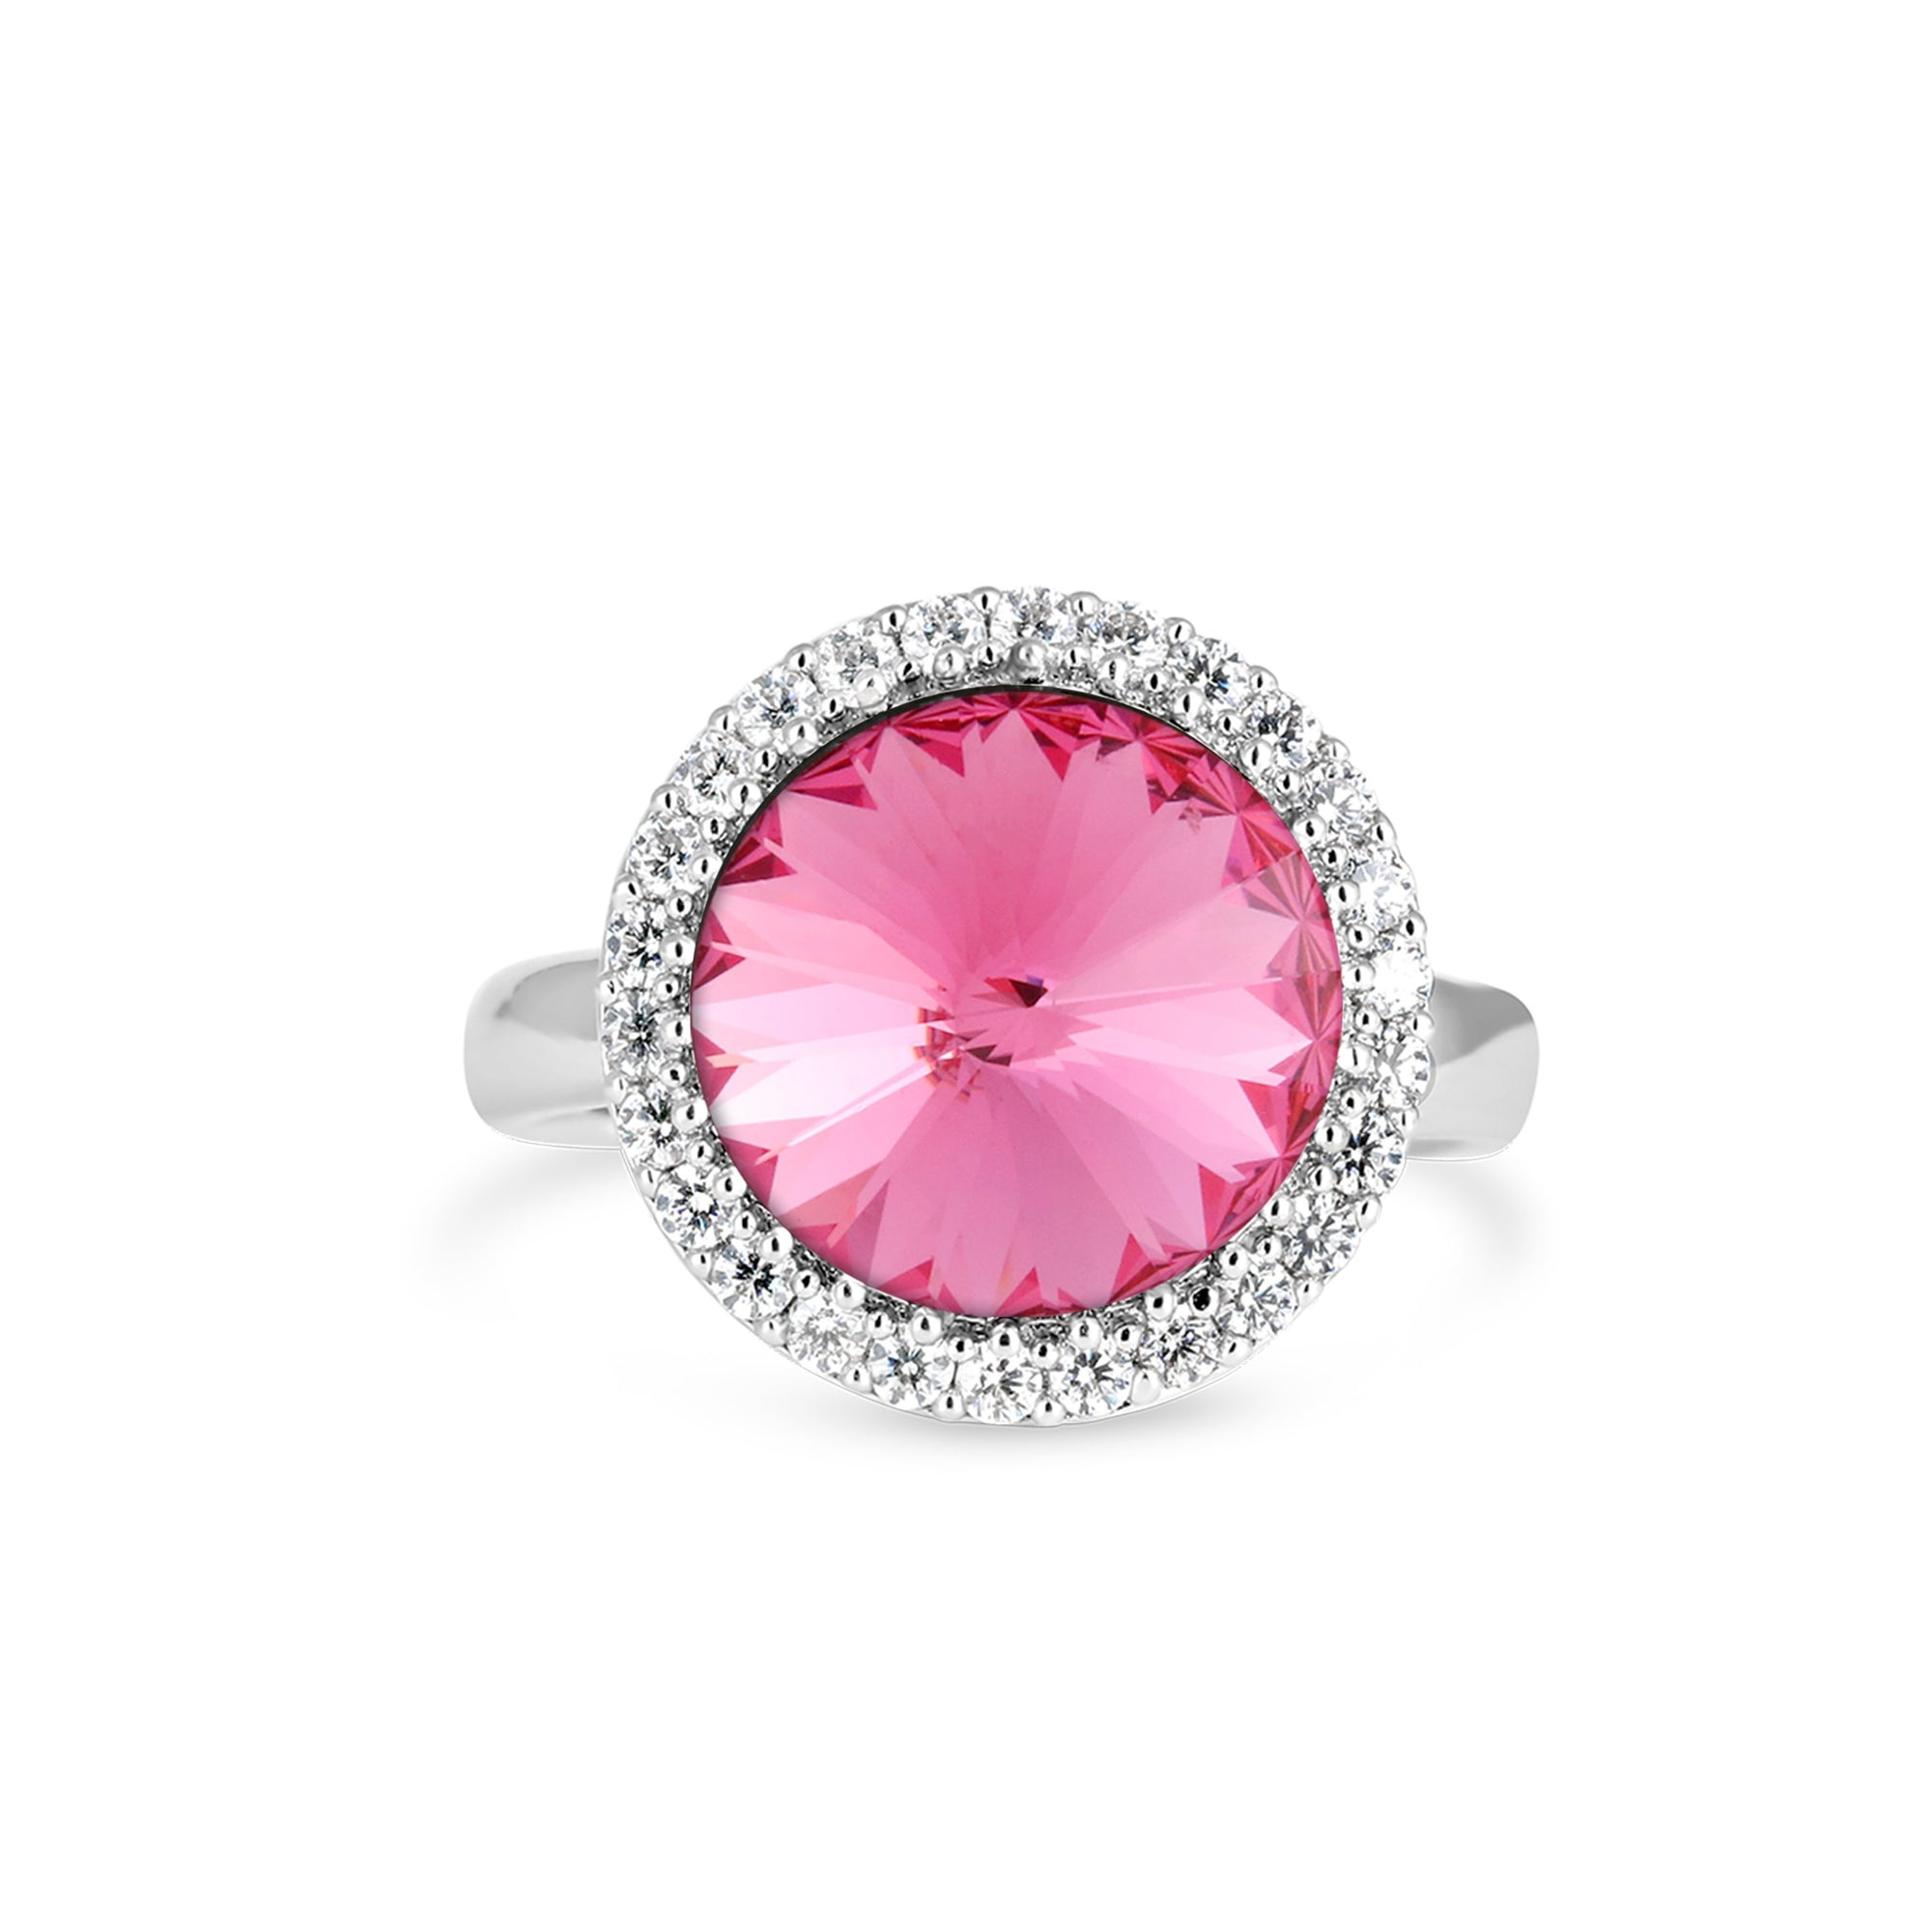 FANCY HALO RING ROSE RING - FOREVER - ESSENTIALS - ROSE 001